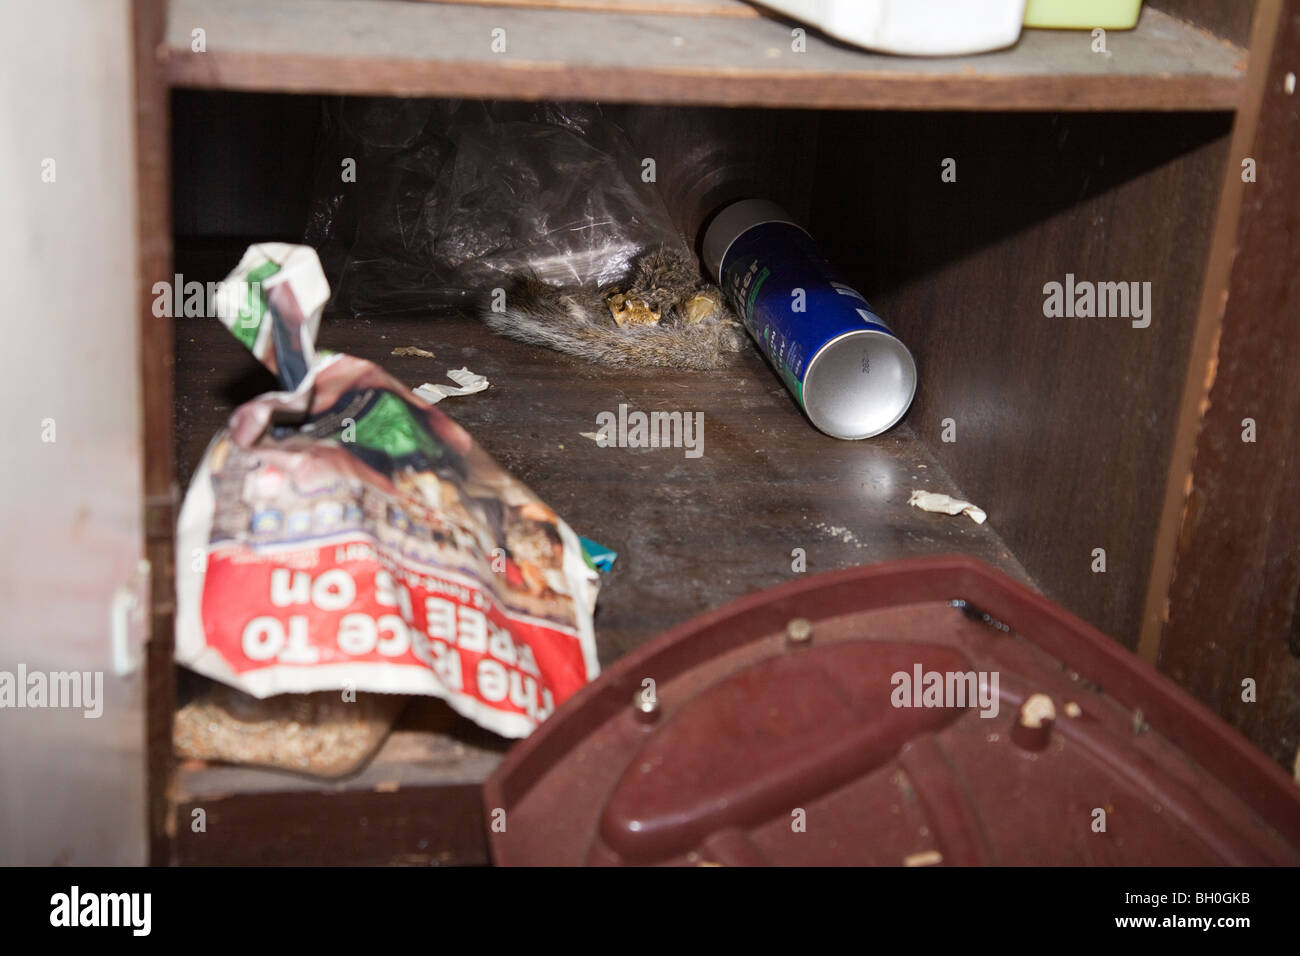 Fossilized squirrel found in kitchen cabinet. Found while executing narcotics related search warrant. - Stock Image